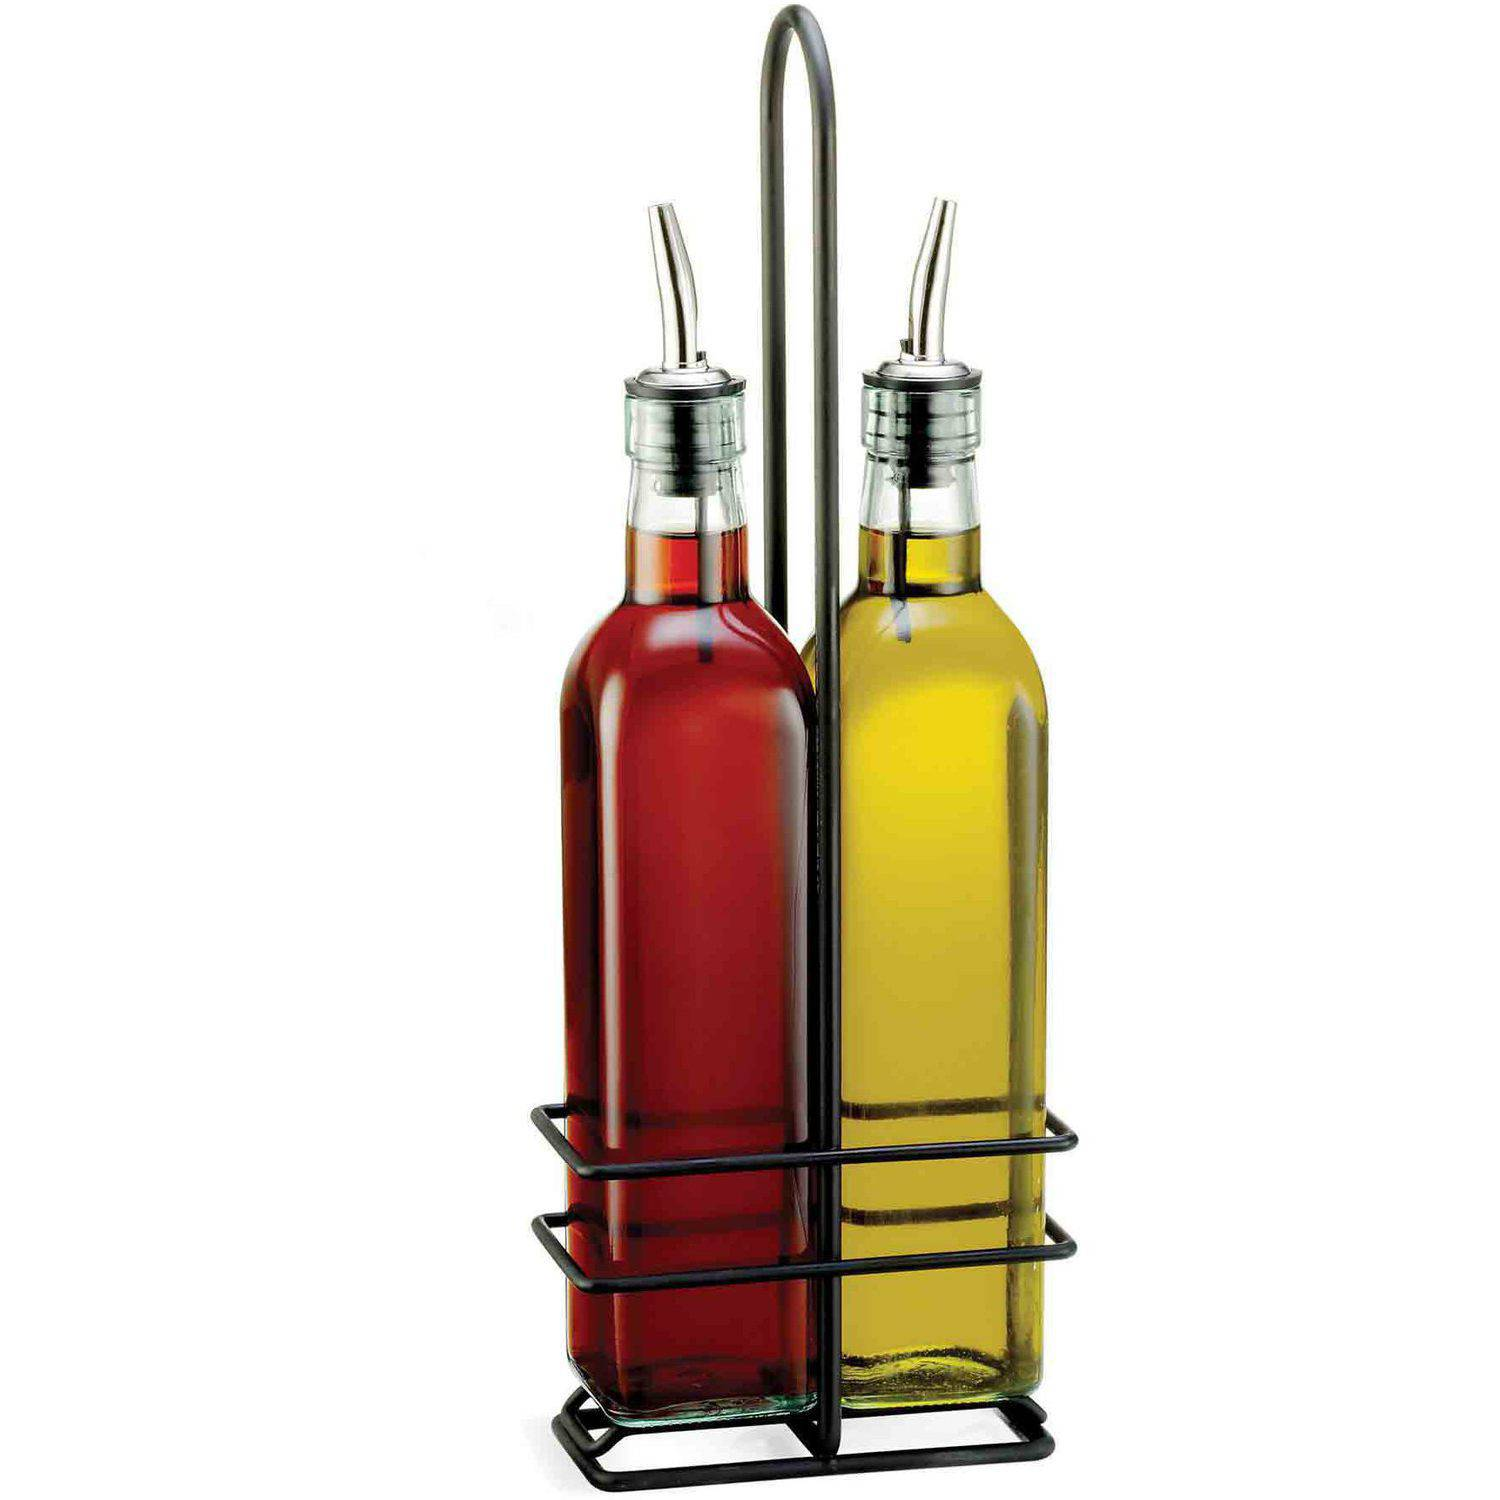 Glass Oil Containers For Kitchen - Trendyexaminer